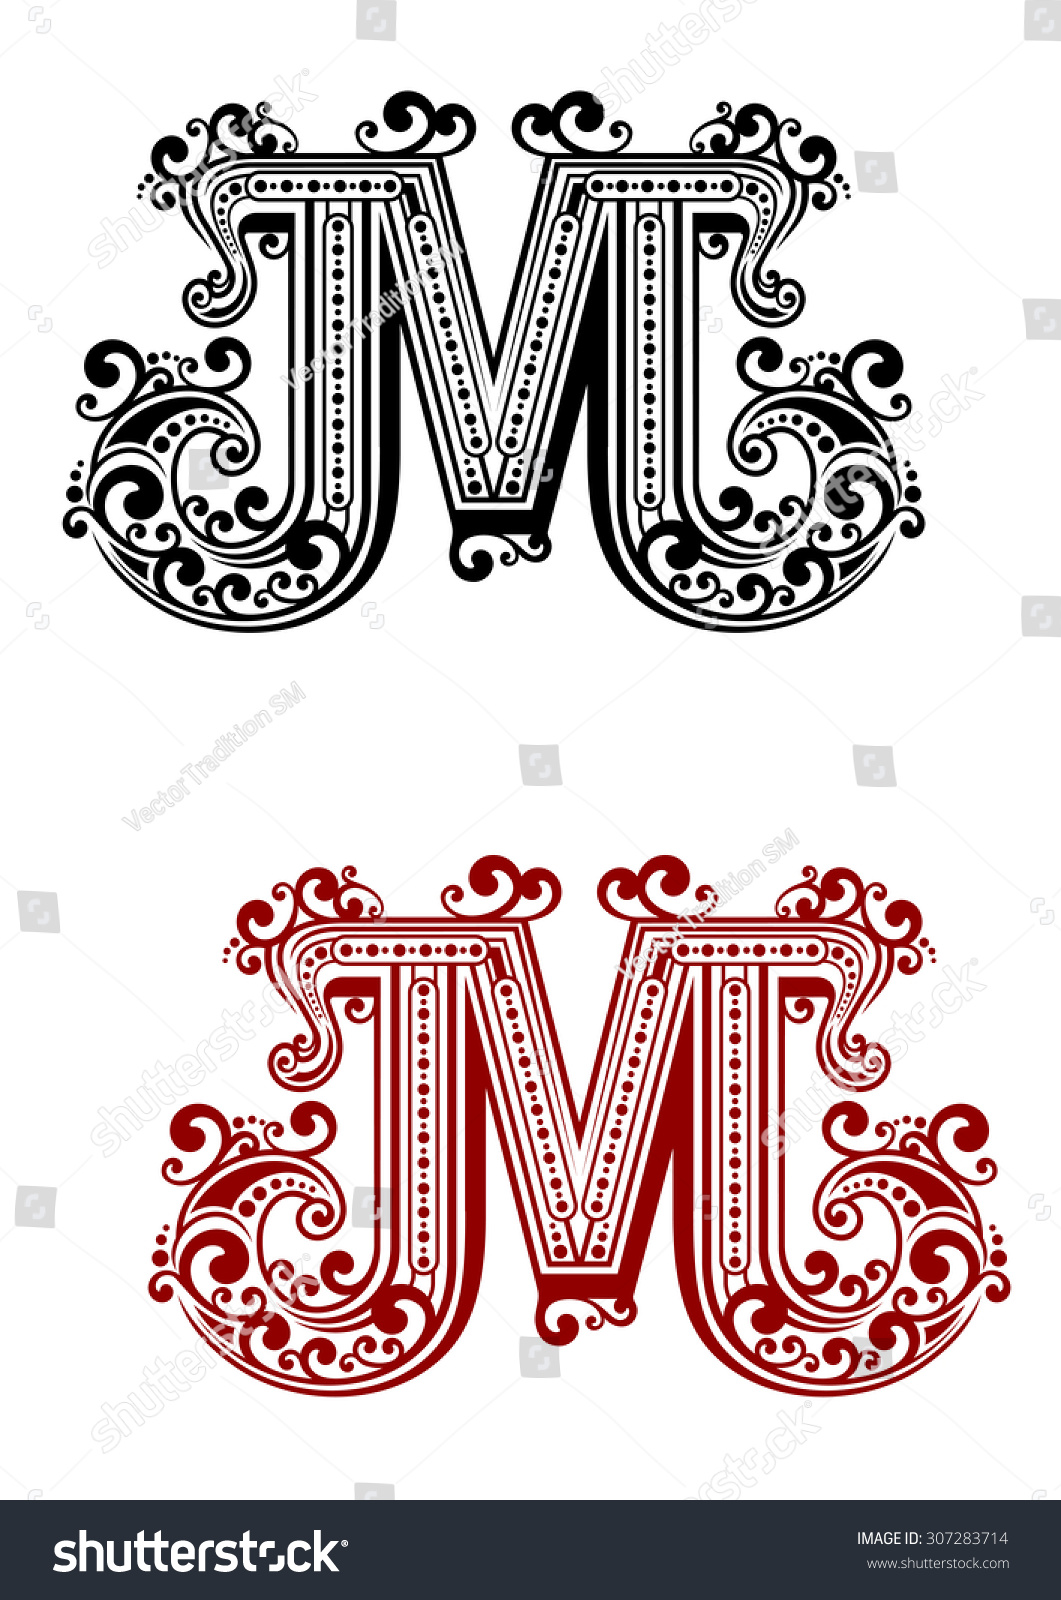 Uppercase Letter M Decorated Calligraphic Swirl Stock Vector ...